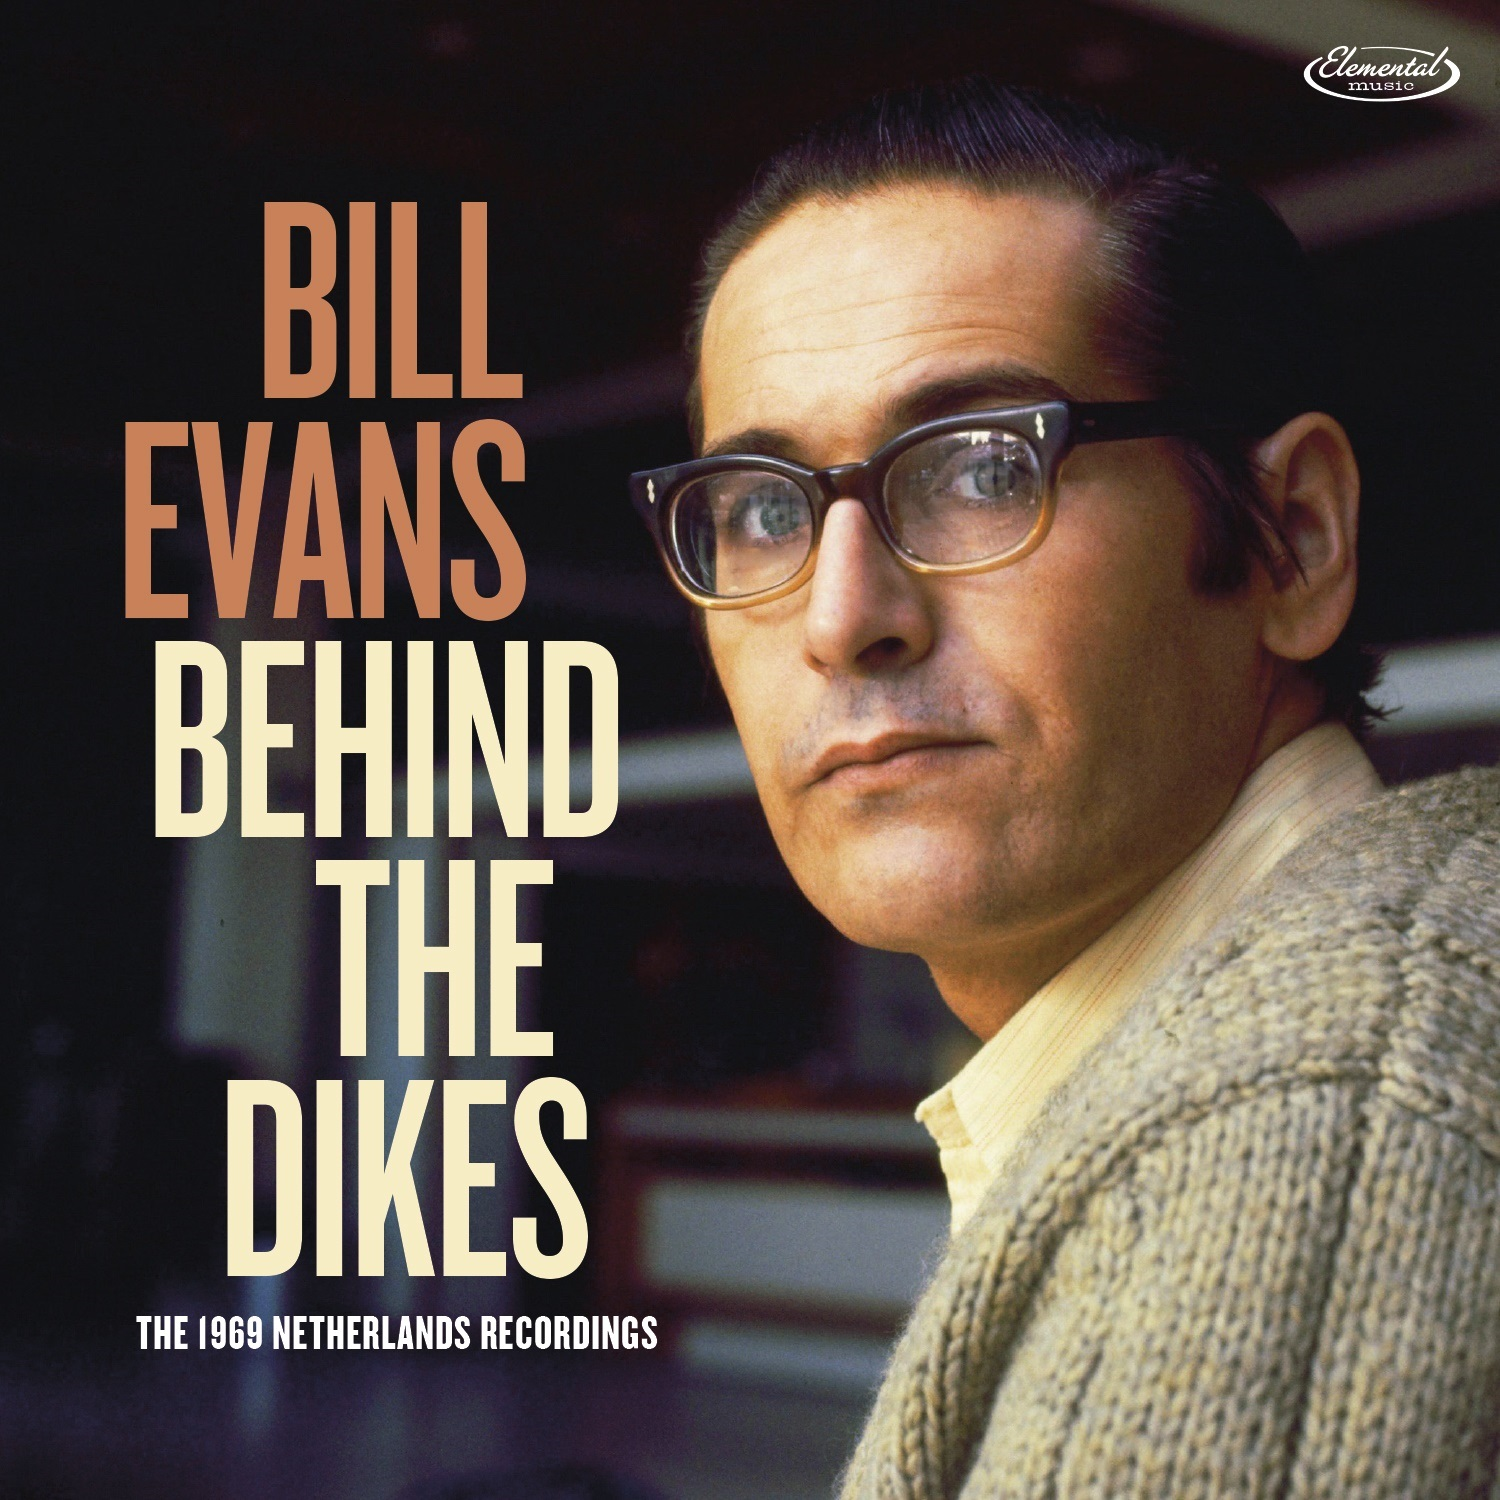 Bill Evans - Behind The Dikes - The 1969 Netherlands Recordings [RSD Drops 2021]